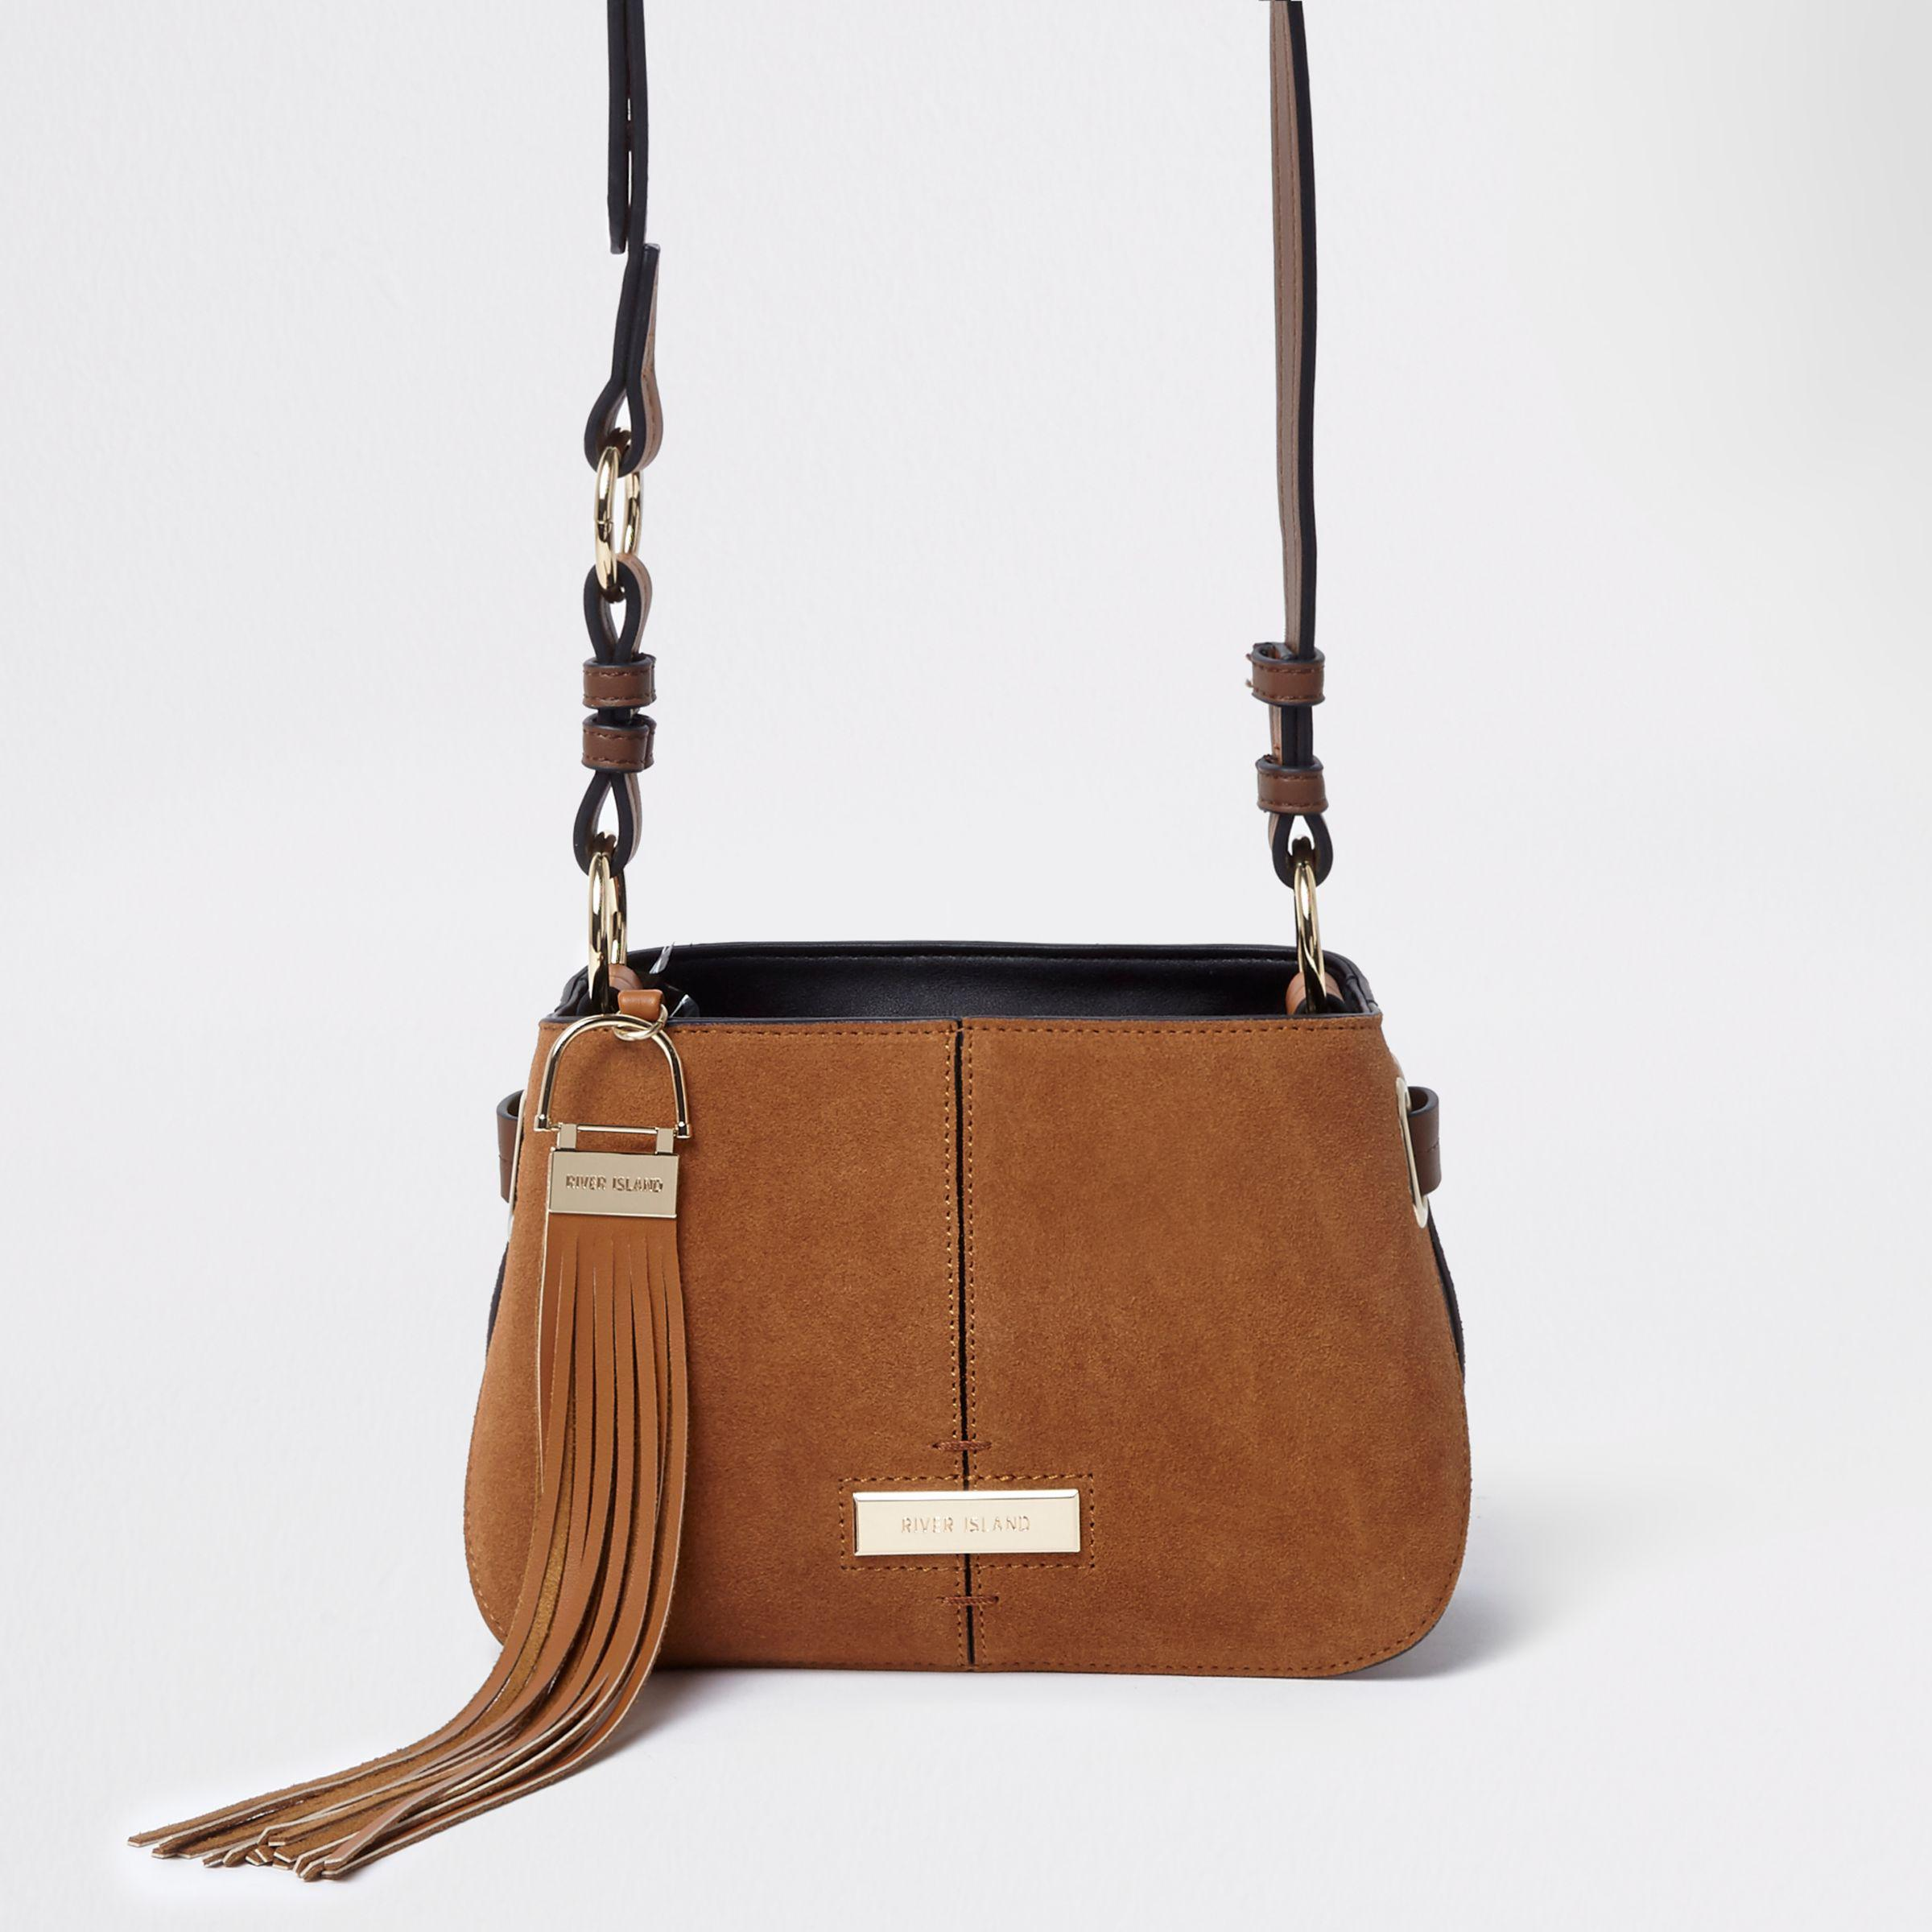 06be2a417 River Island Tan Suede Tassel Leather Cross Body Bag in Brown - Lyst